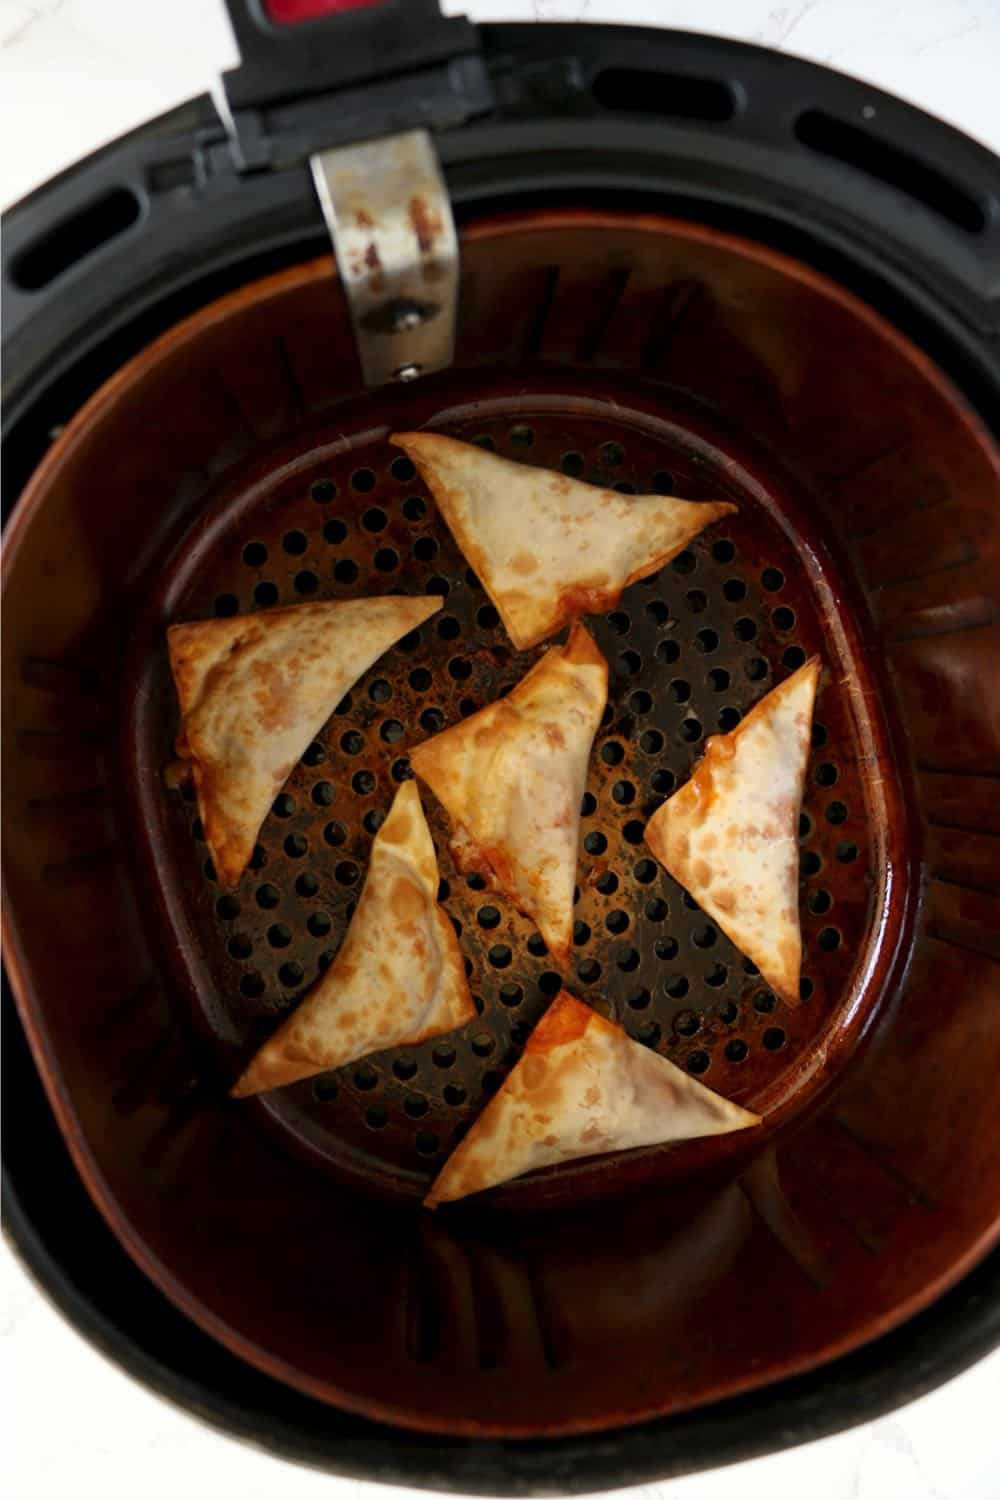 Pizza Rolls in the air fryer after cooking.